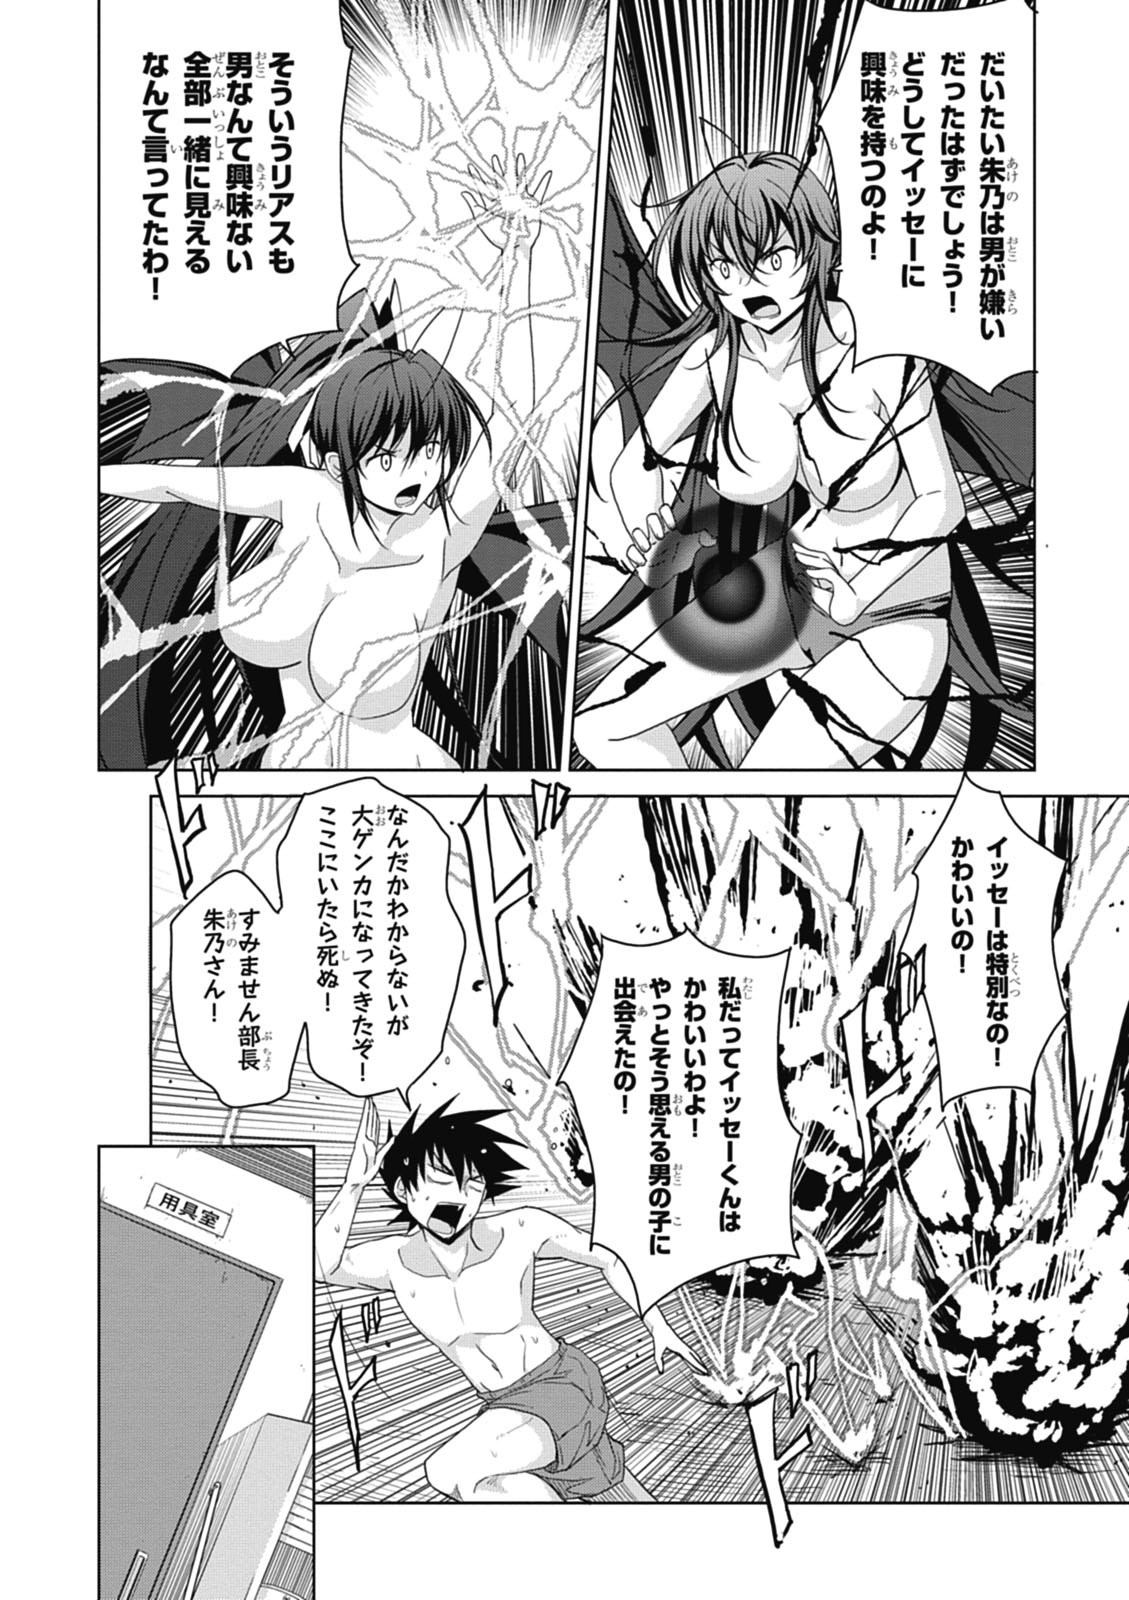 P048-073_DxD_38話.indd